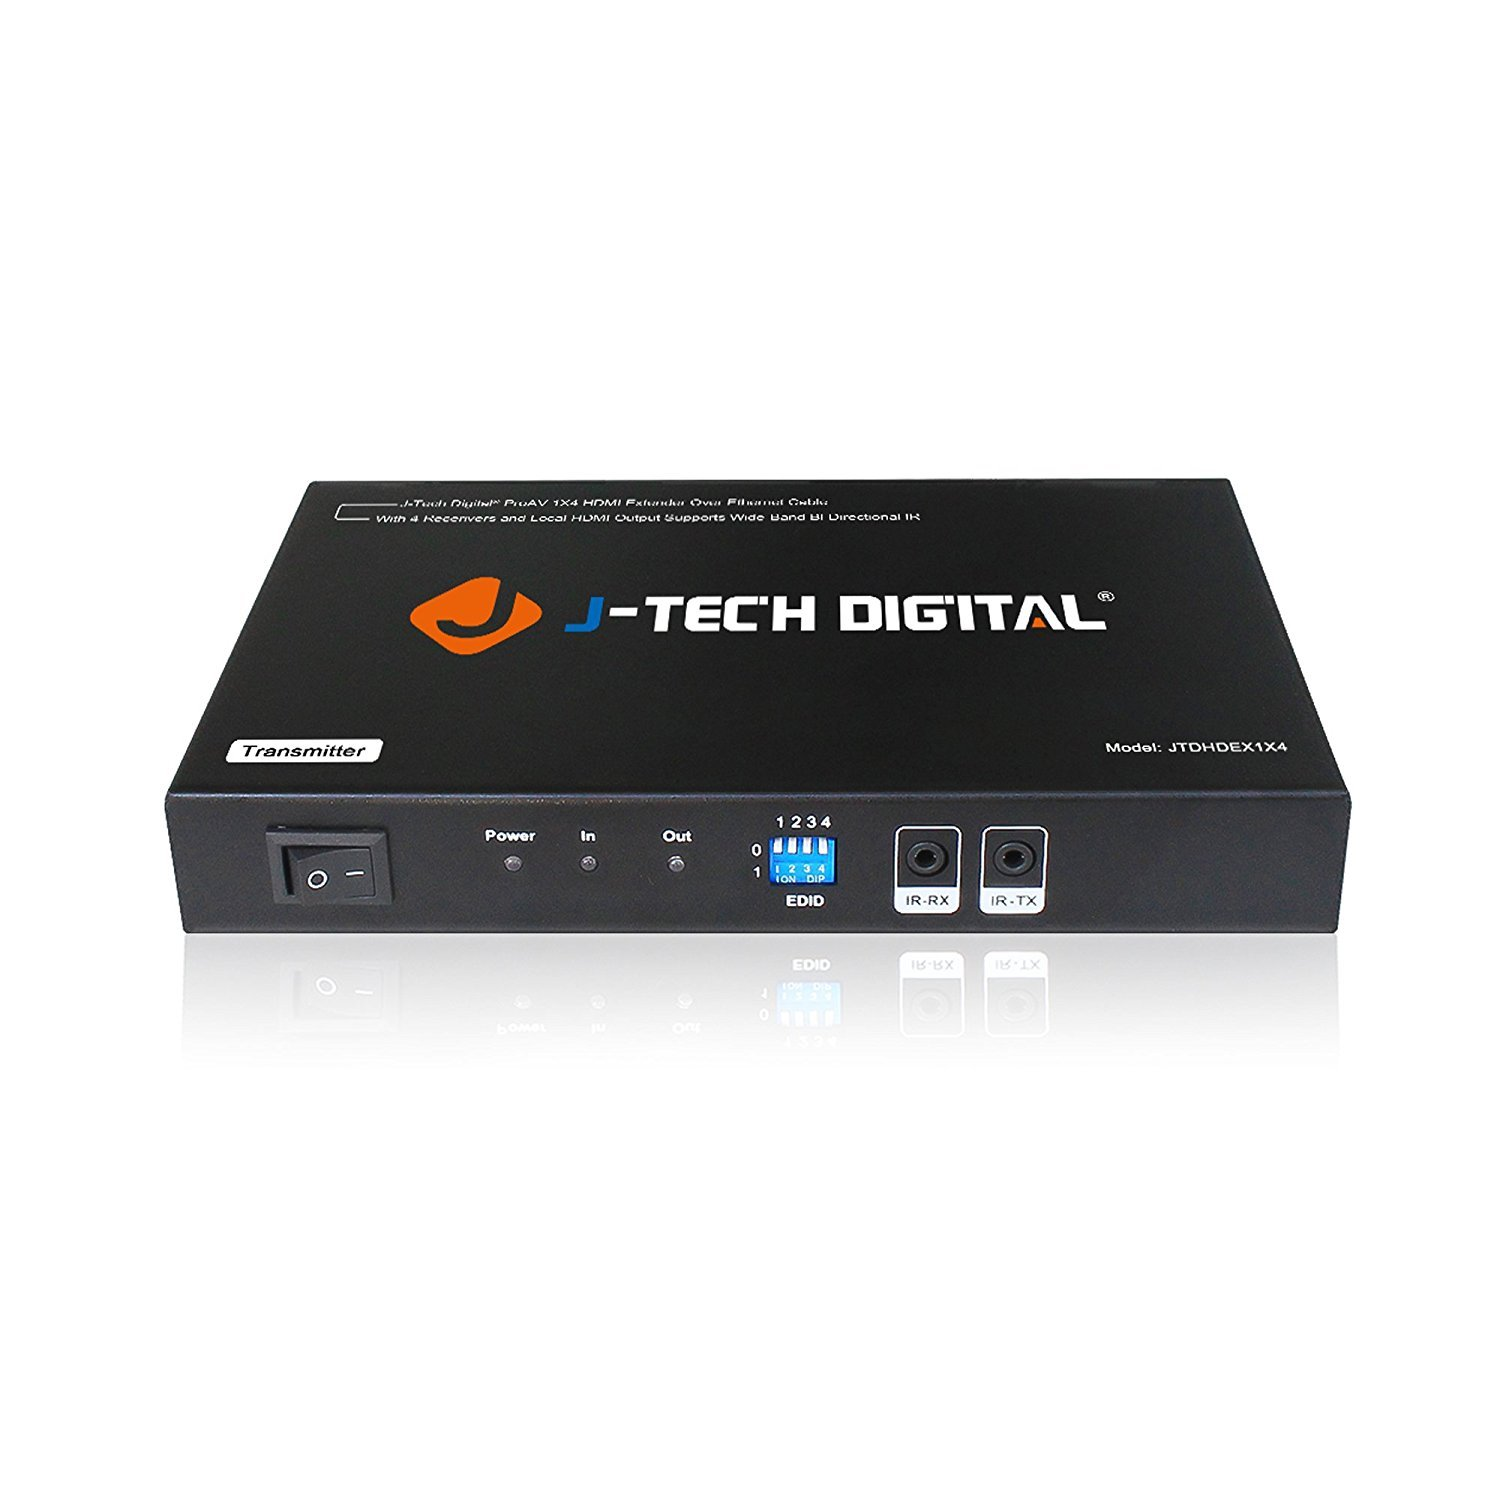 J-Tech Digital 1x4 HDMI Extender Splitter Combo Over Cat5e/Cat6 cable up to 164 feet (50 meters) at 1080P with Local Loop out and Bi-directional IR control (JTDHDEX1x4) by J-Tech Digital